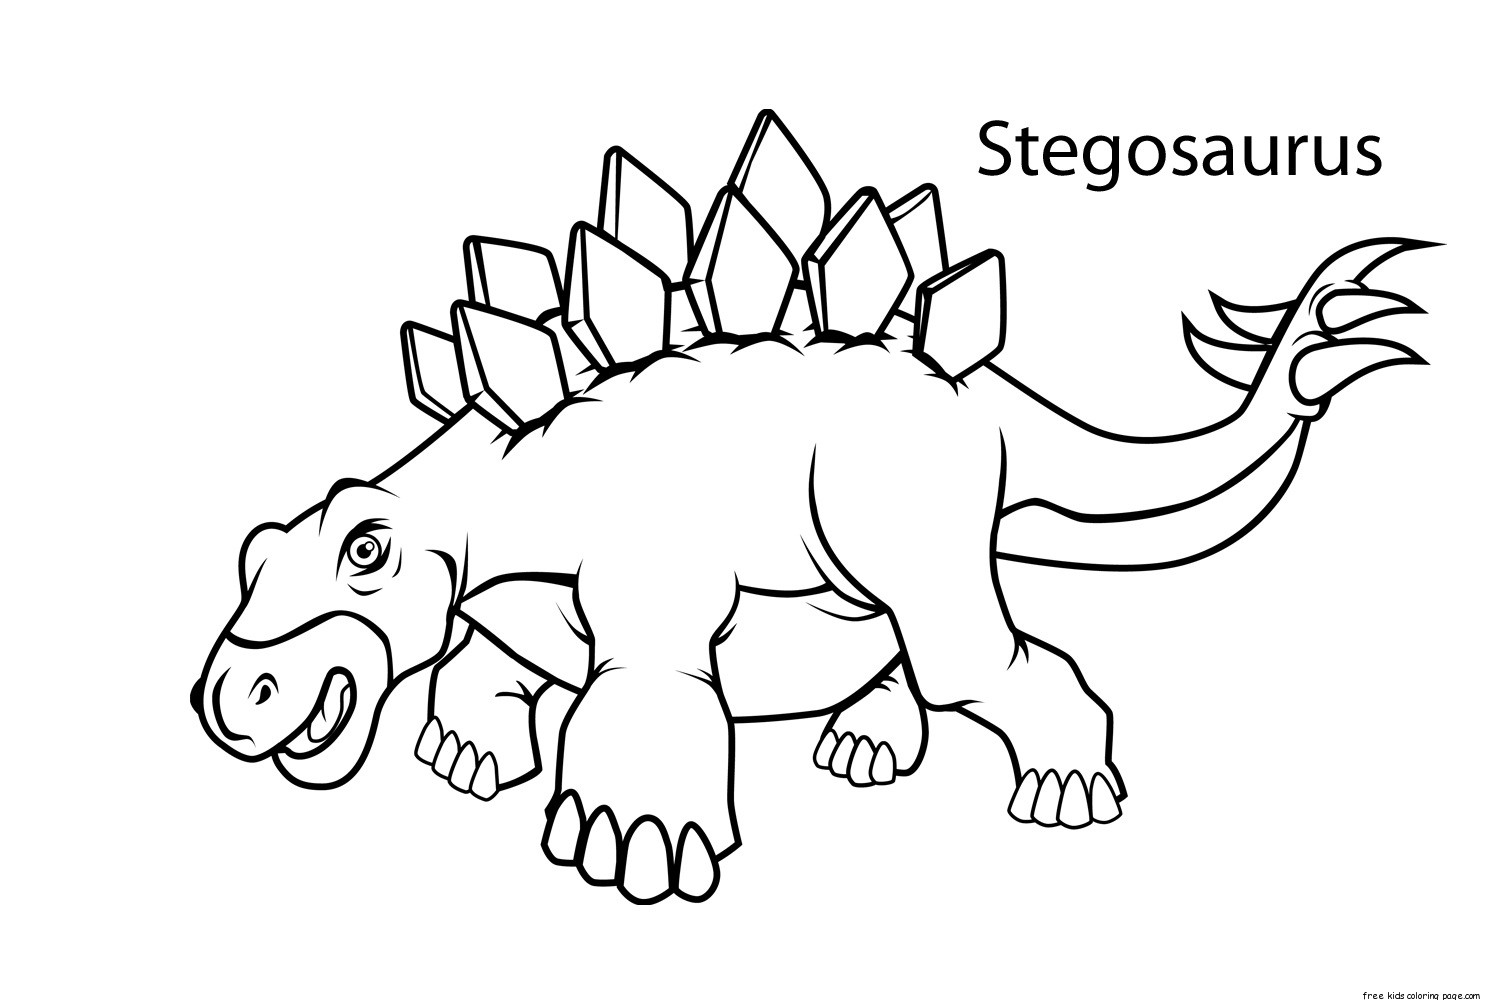 printable stegosaurus dinosaur coloring pages for kidsfree printable coloring pages for kids. Black Bedroom Furniture Sets. Home Design Ideas